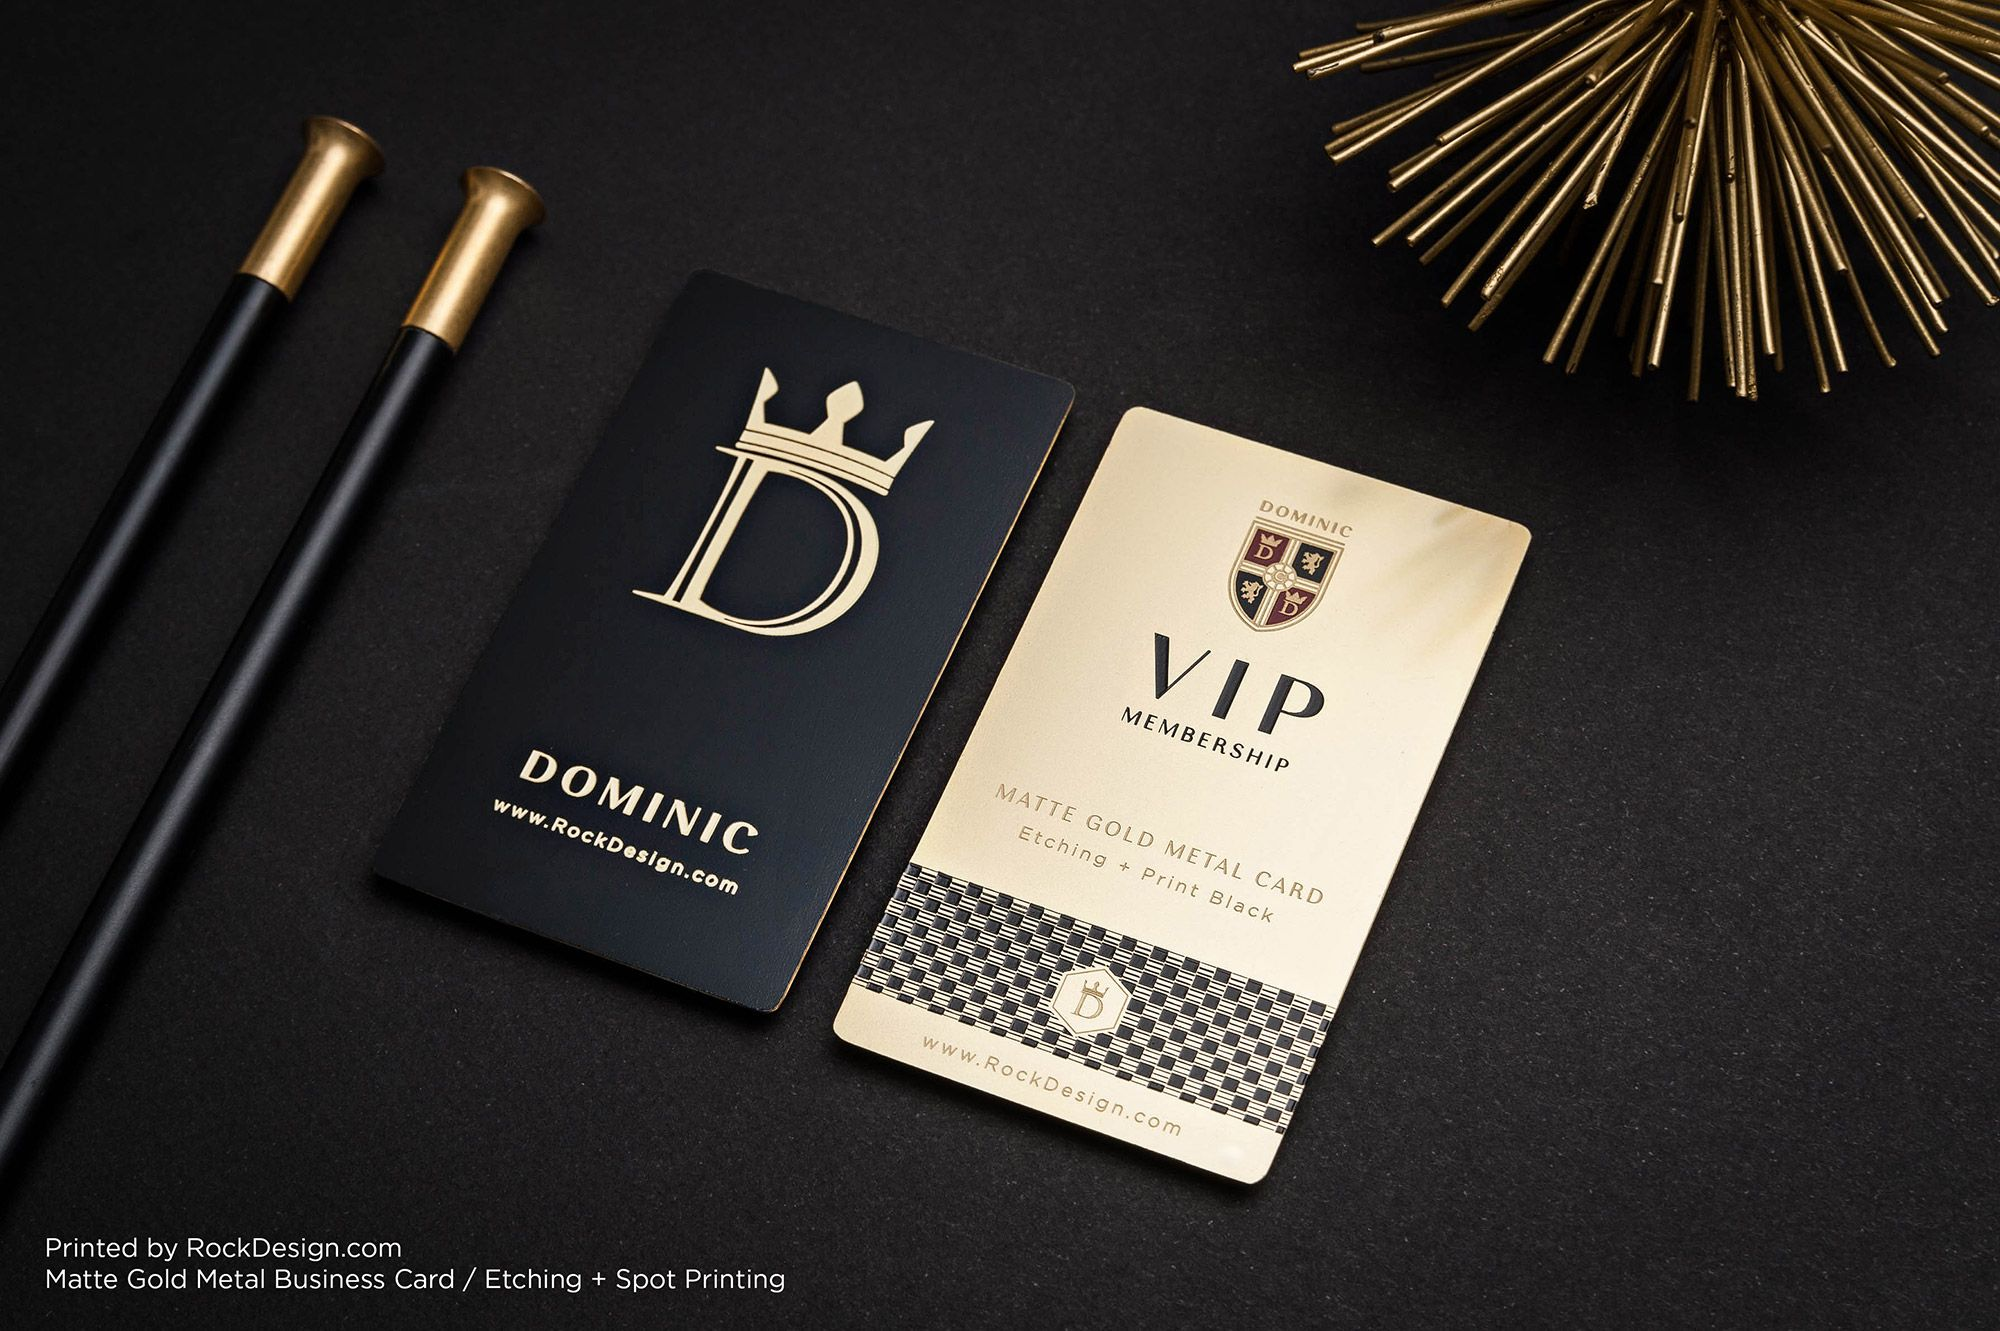 Gold Metal Business Cards | Web Design Layouts | Pinterest ...